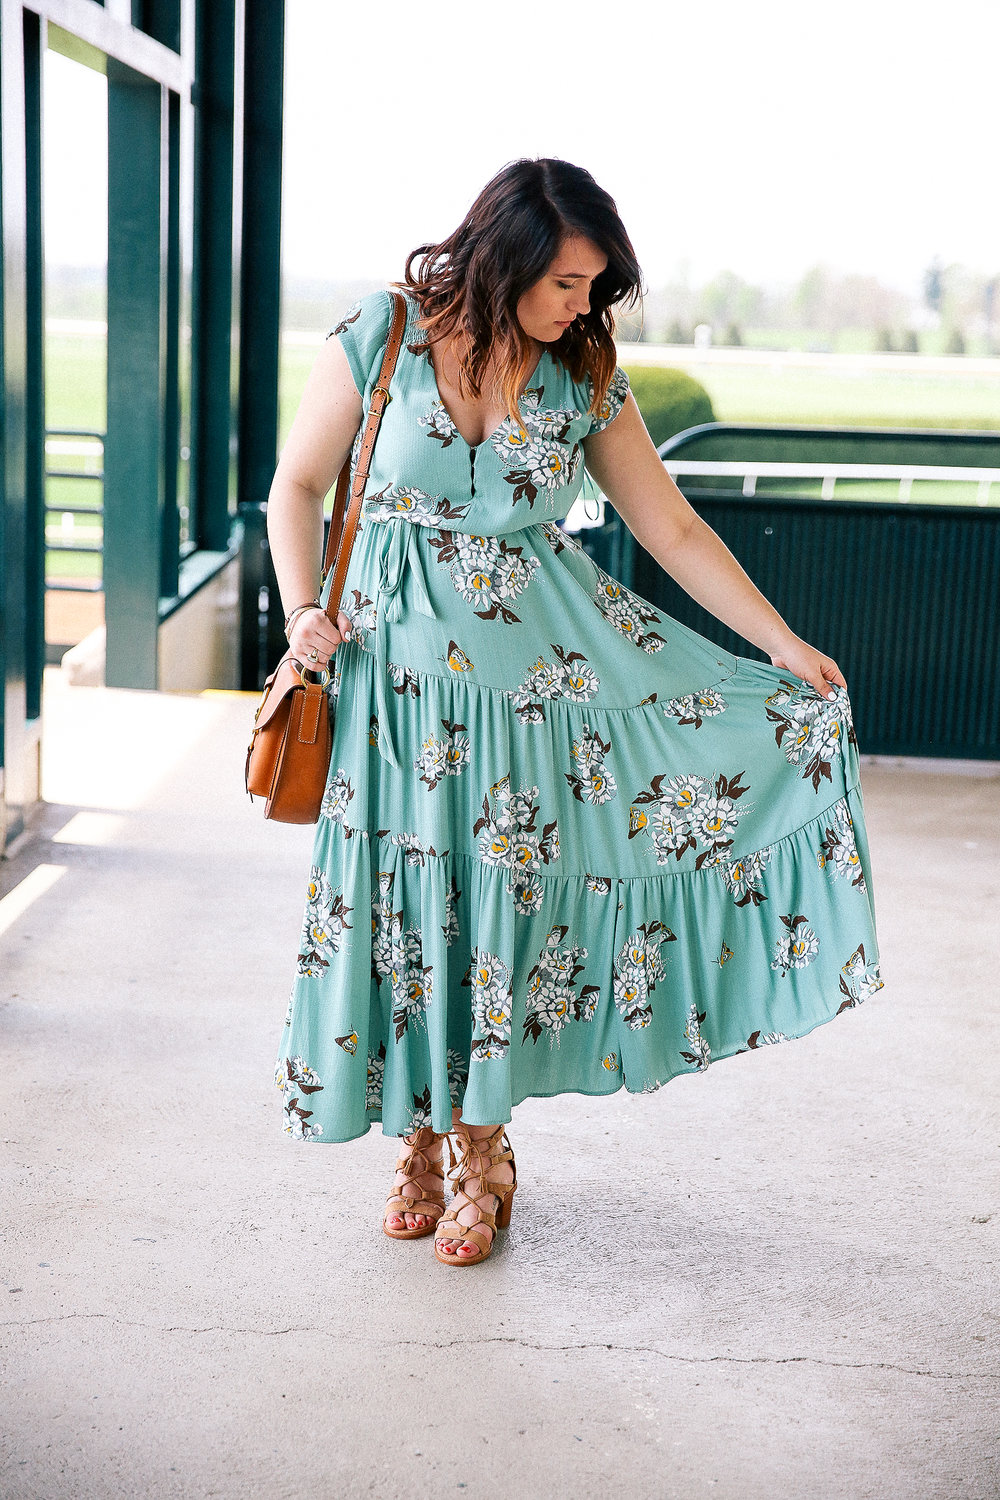 @freepeople Spring Dress + FRYE Boho Pieces via chelceytate.com